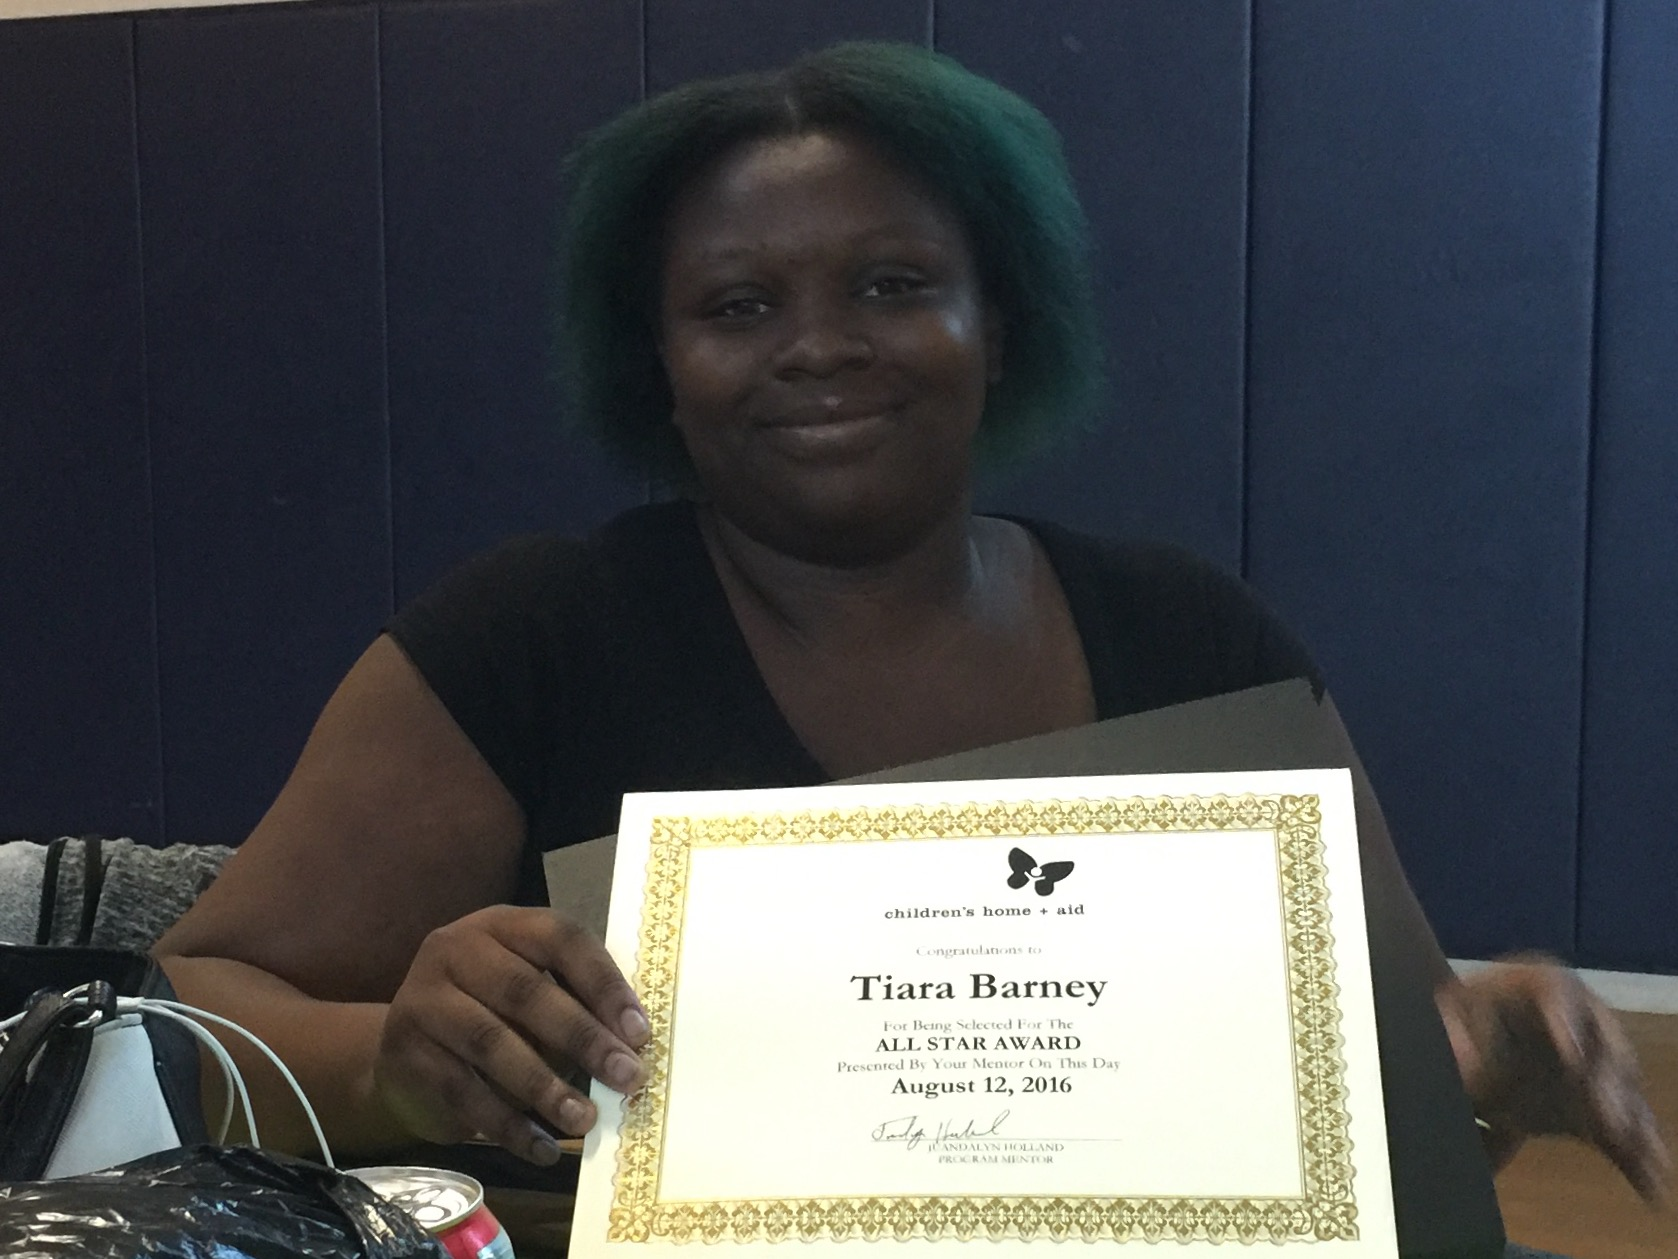 Tiara Barney, one of our wonderful and talented youth workers being honored